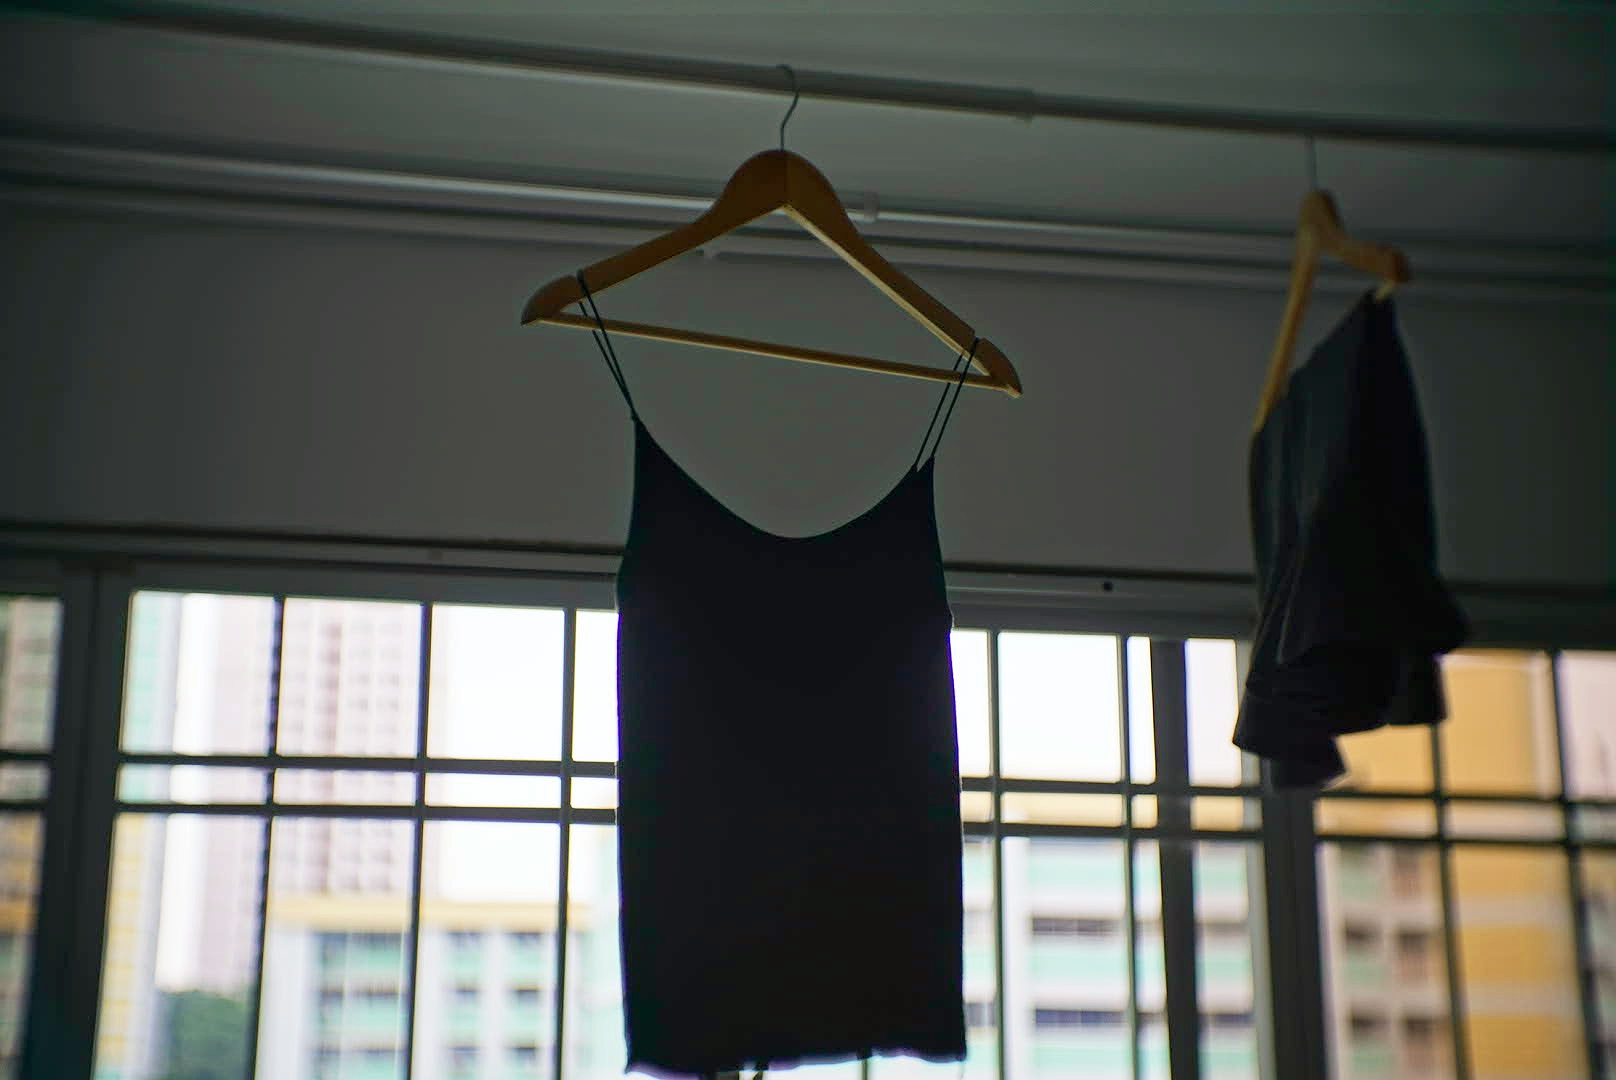 Air drying clothes is very common in Singapore.